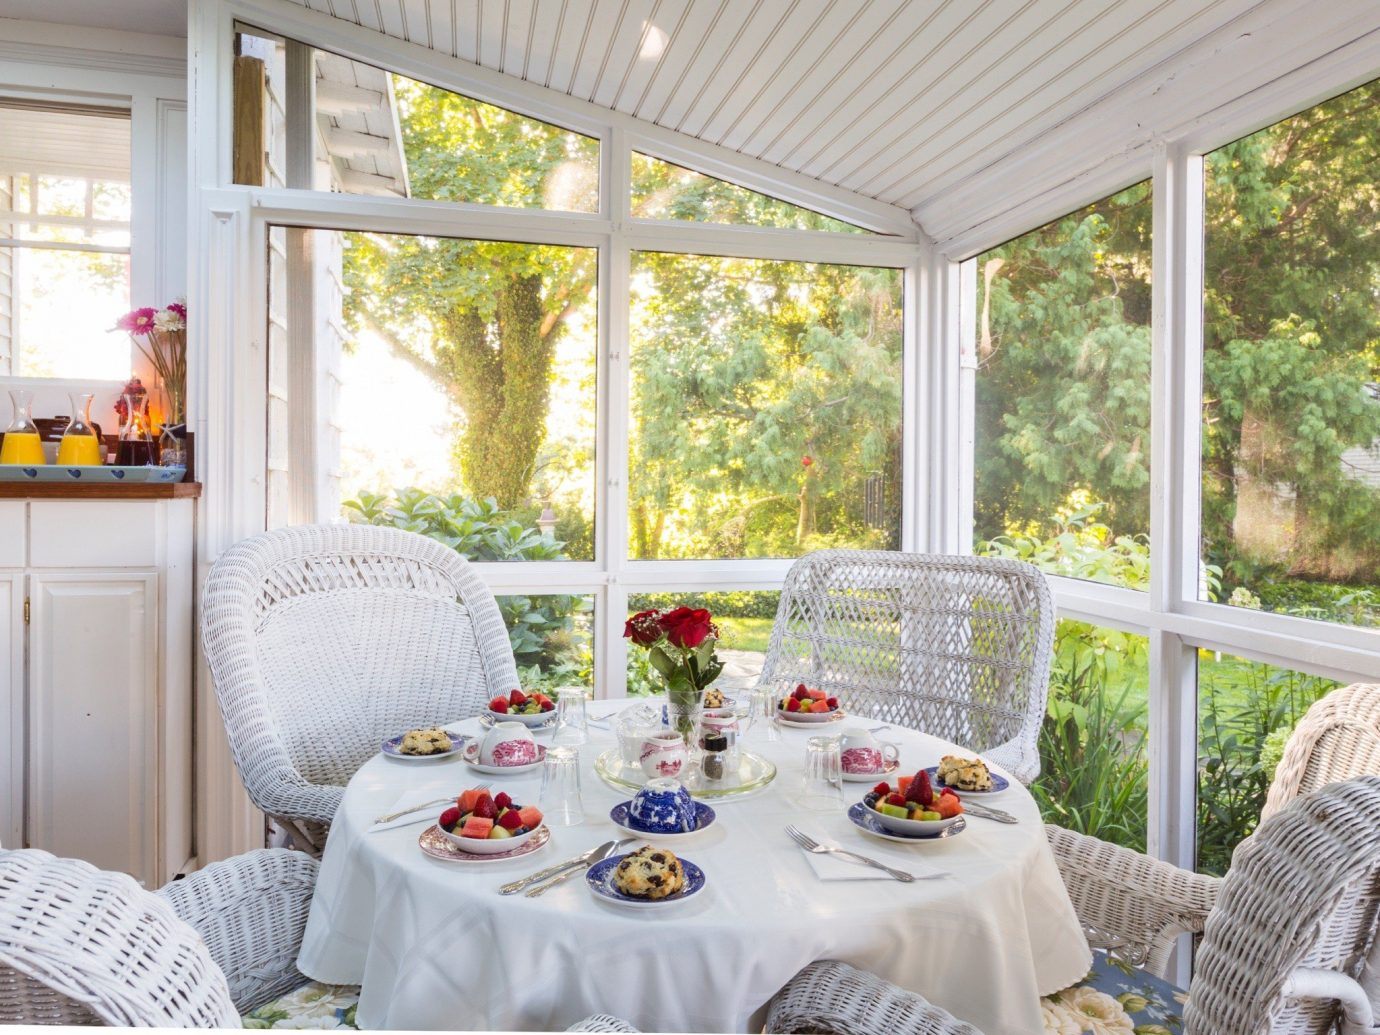 Hotels window indoor home property porch table dining room house outdoor structure real estate interior design furniture estate backyard cottage tablecloth Patio living room linens decorated